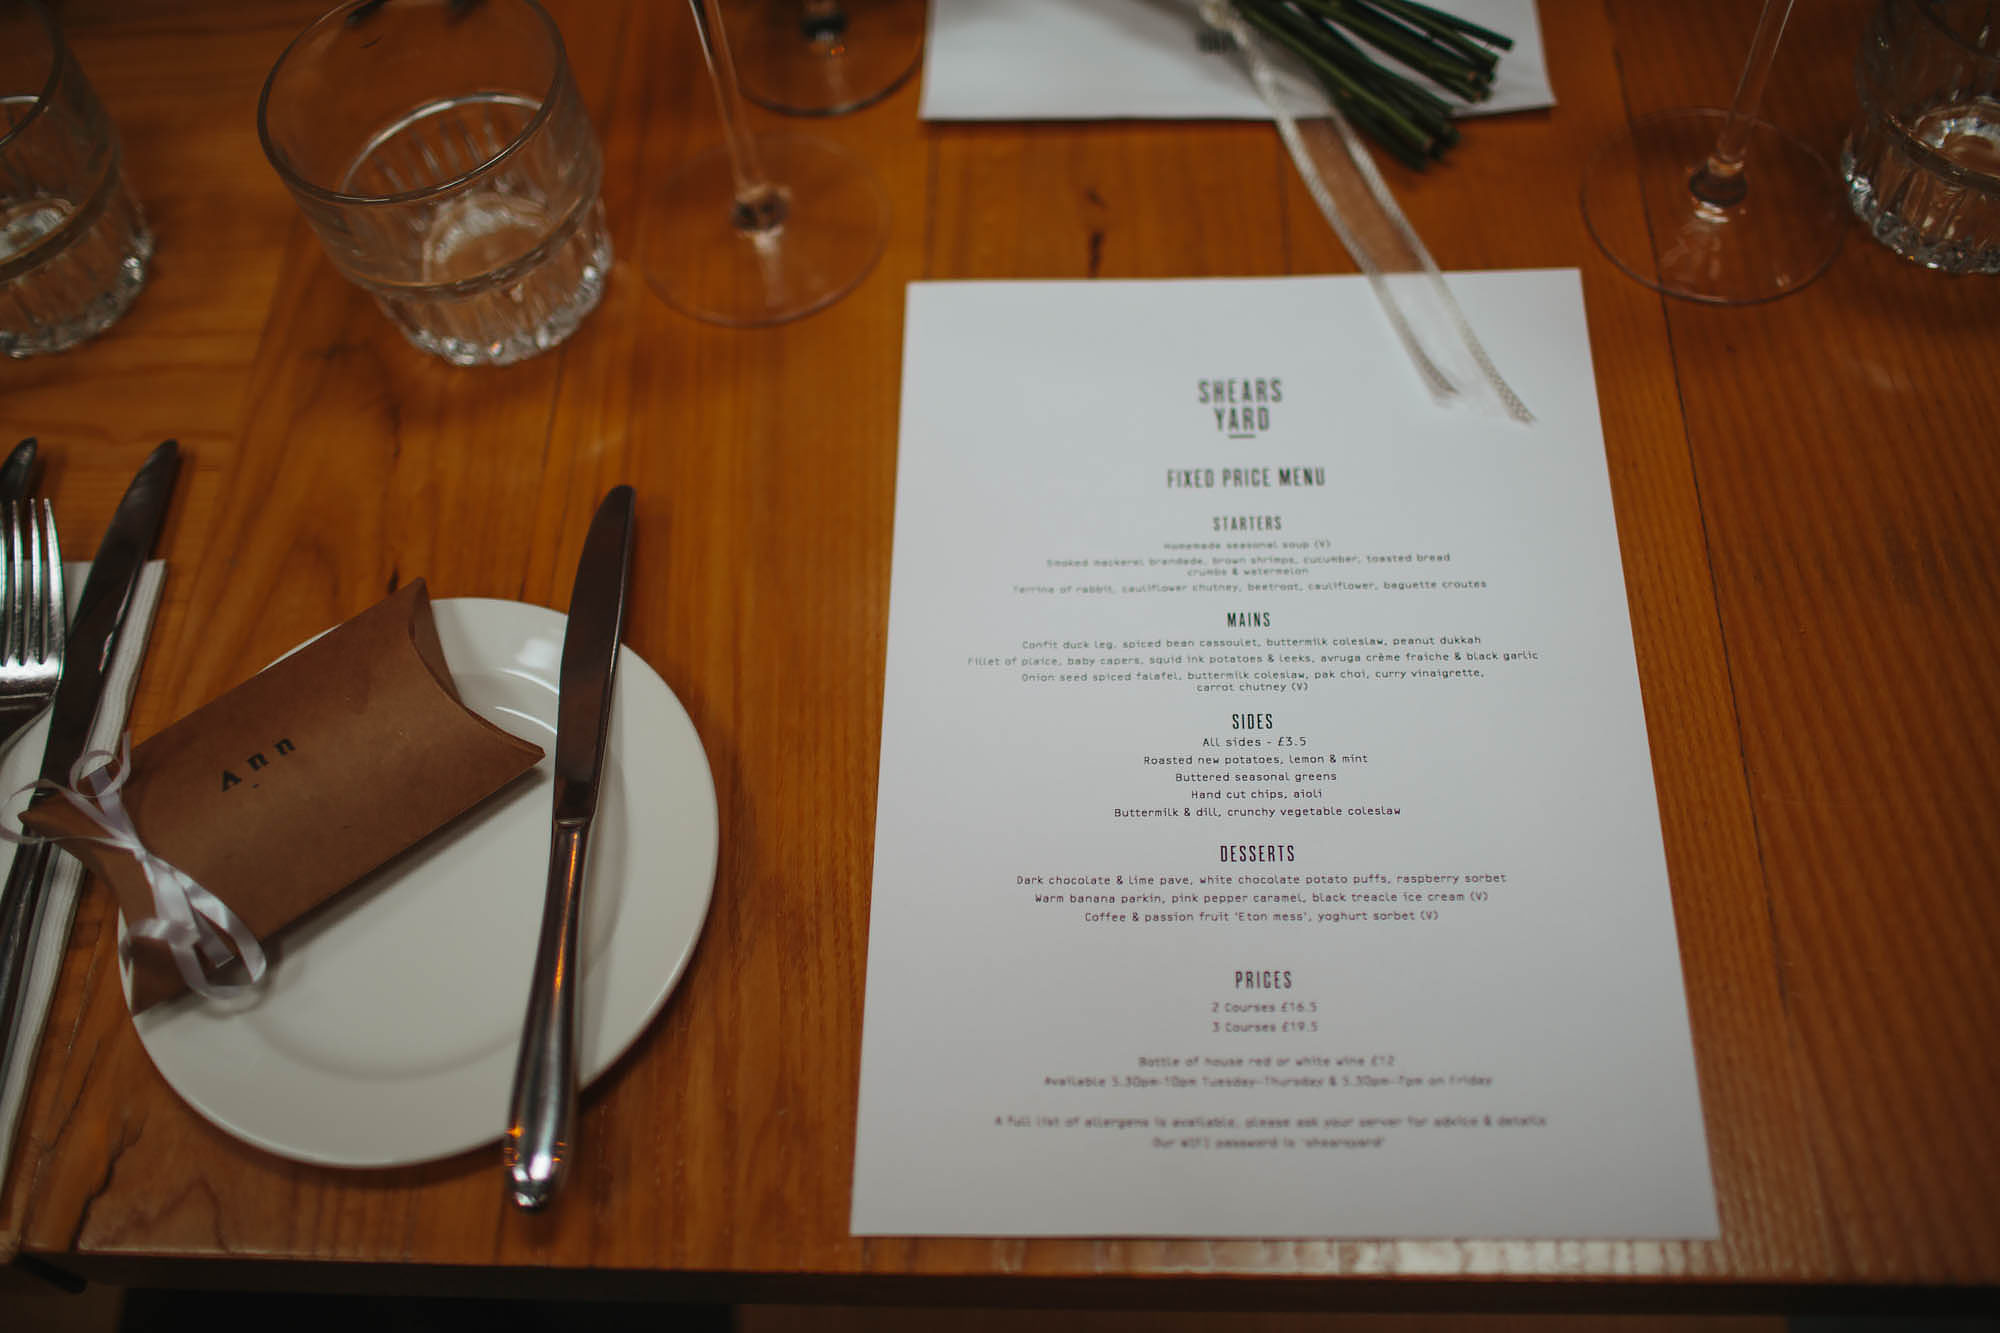 Wedding menu at Shears Yard in Leeds Yorkshire